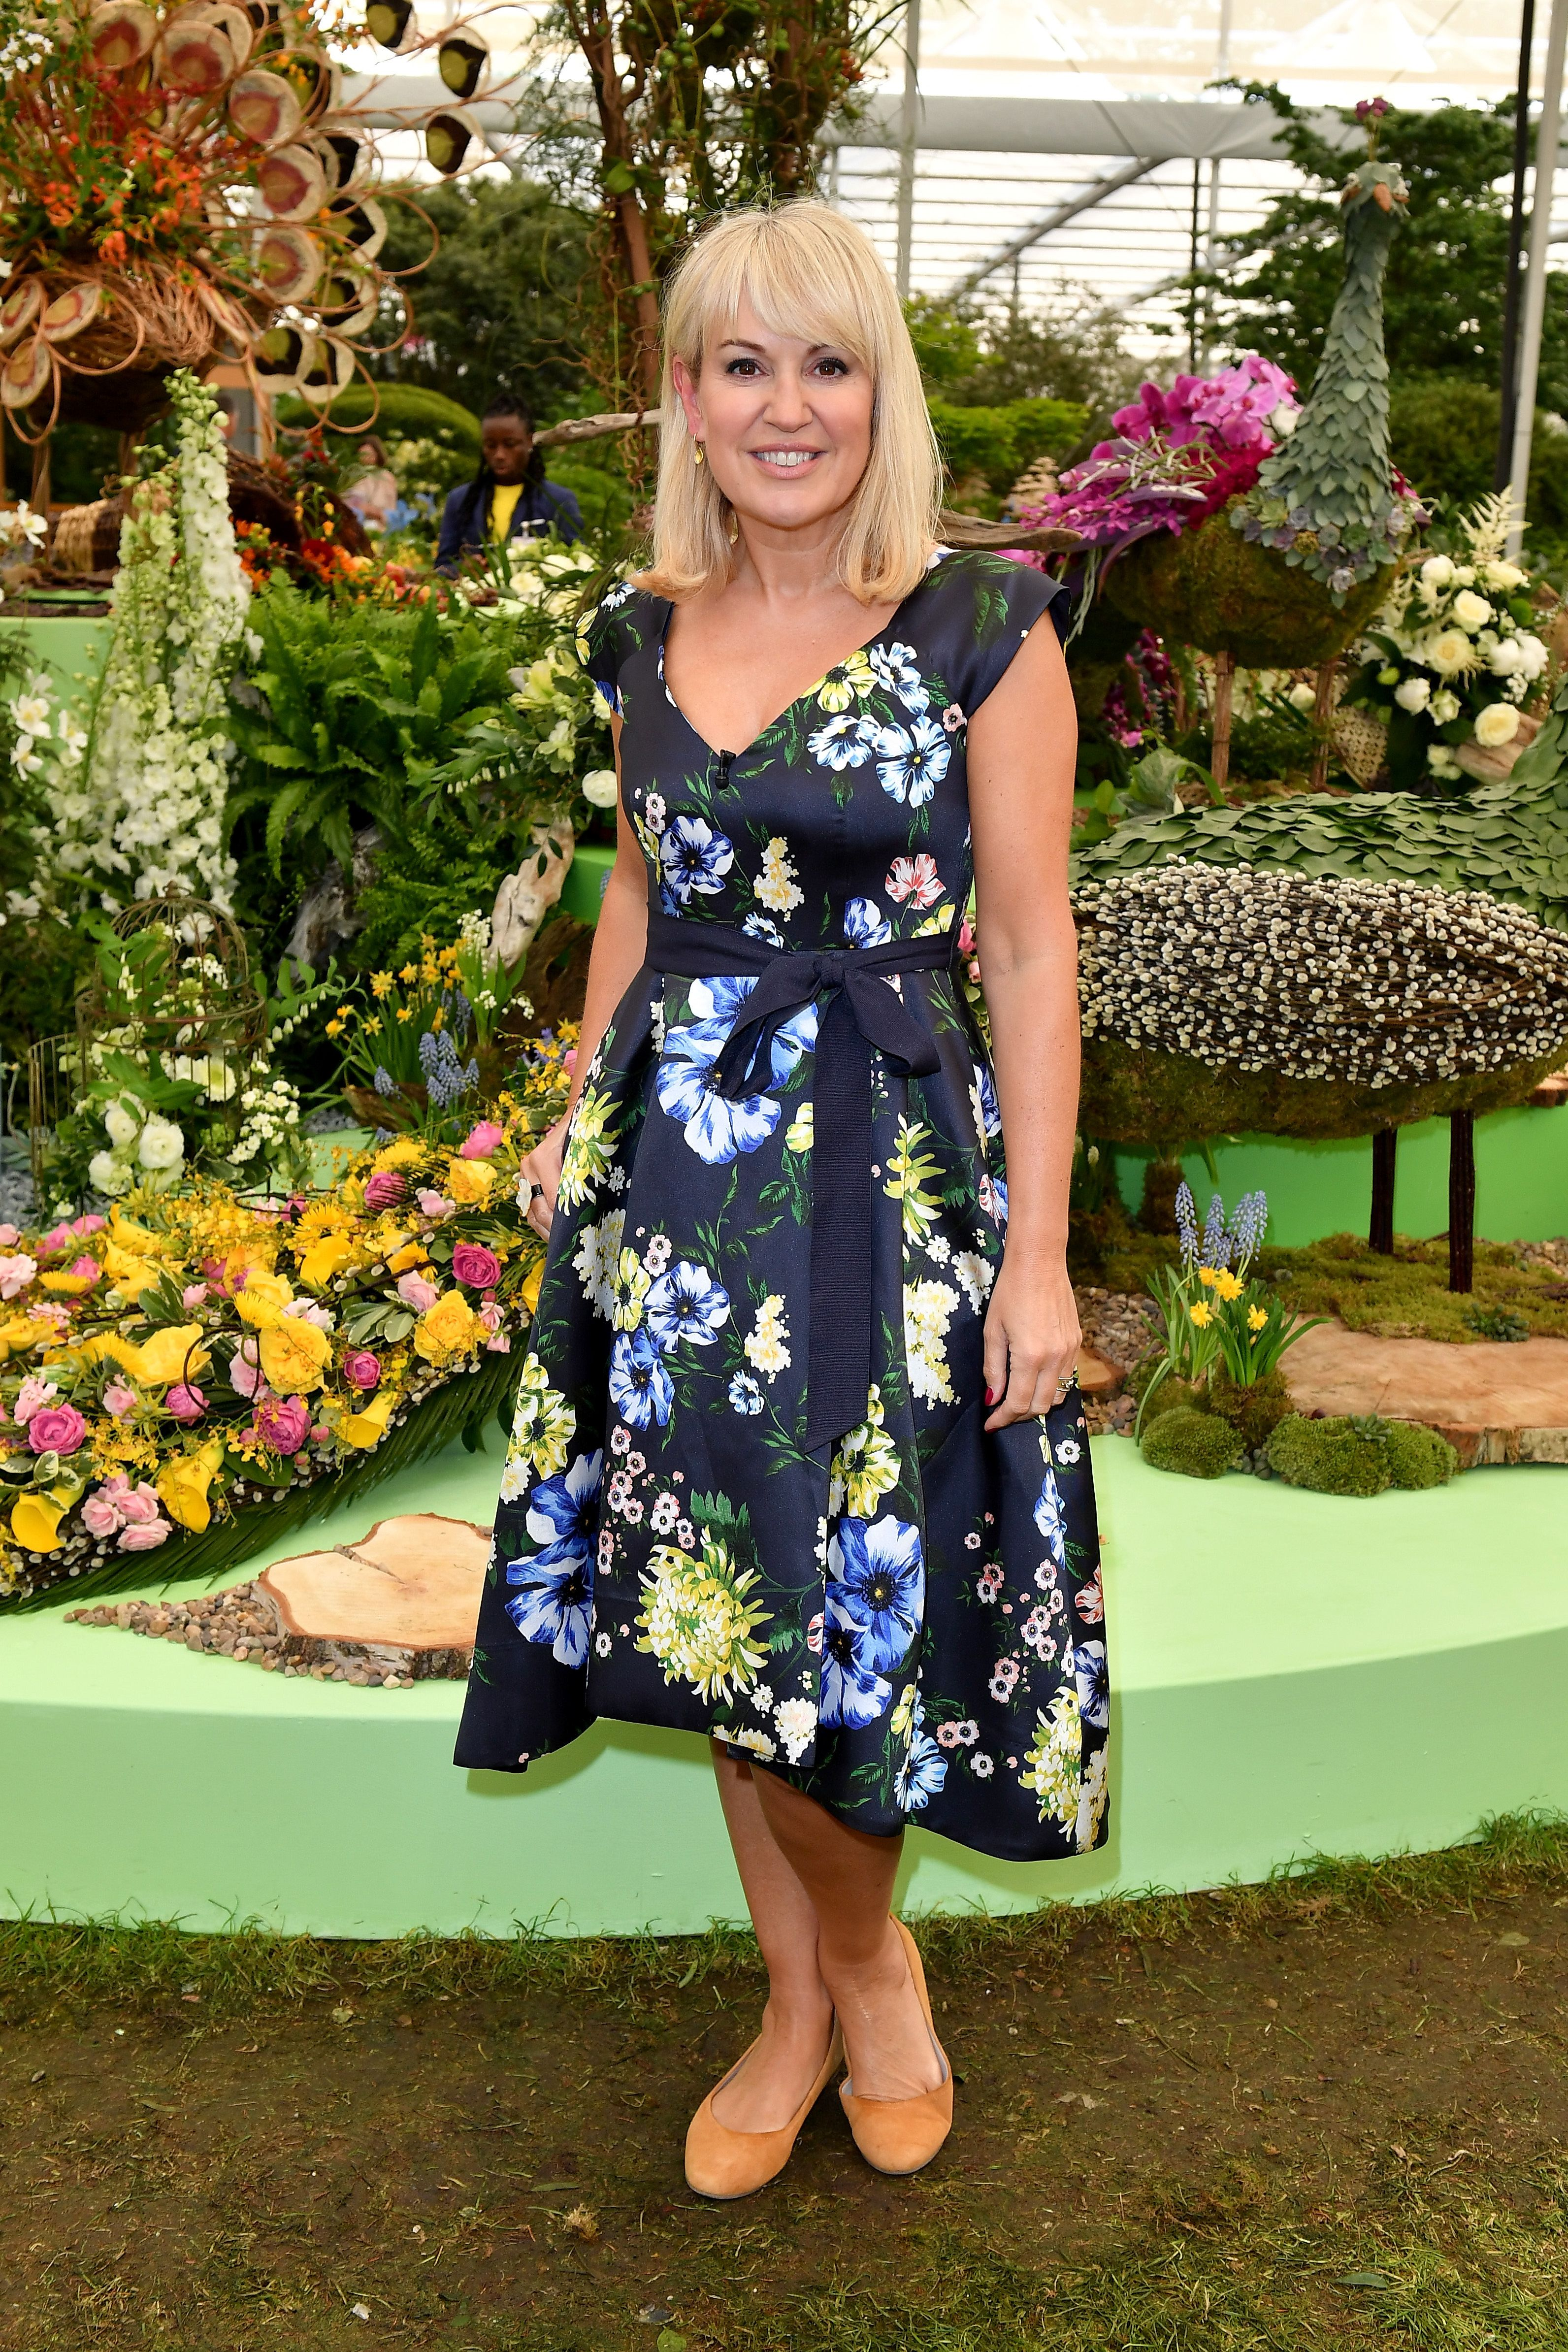 Tour Chelsea Flower Show presenter Nicki Chapman's garden at her West London home